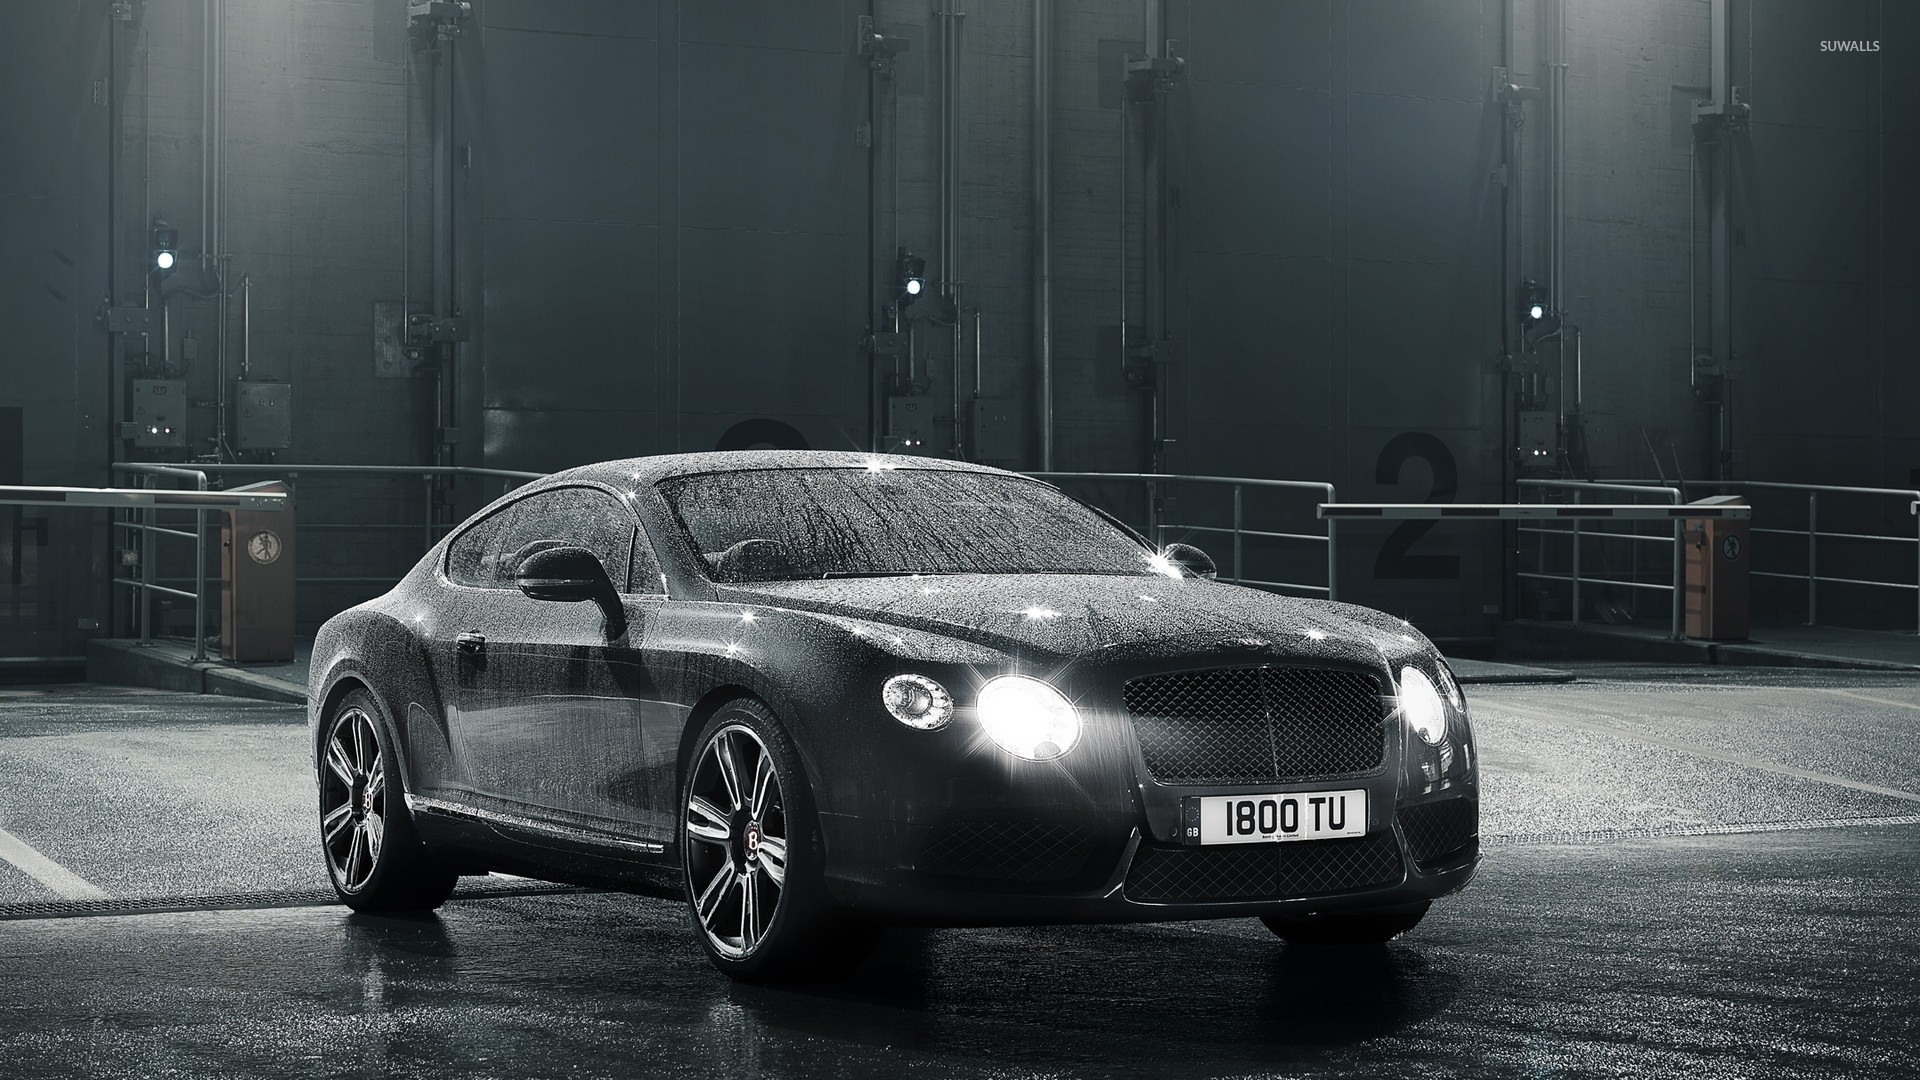 Charmant Water Drops On A 2014 Bentley Continental GT Wallpaper